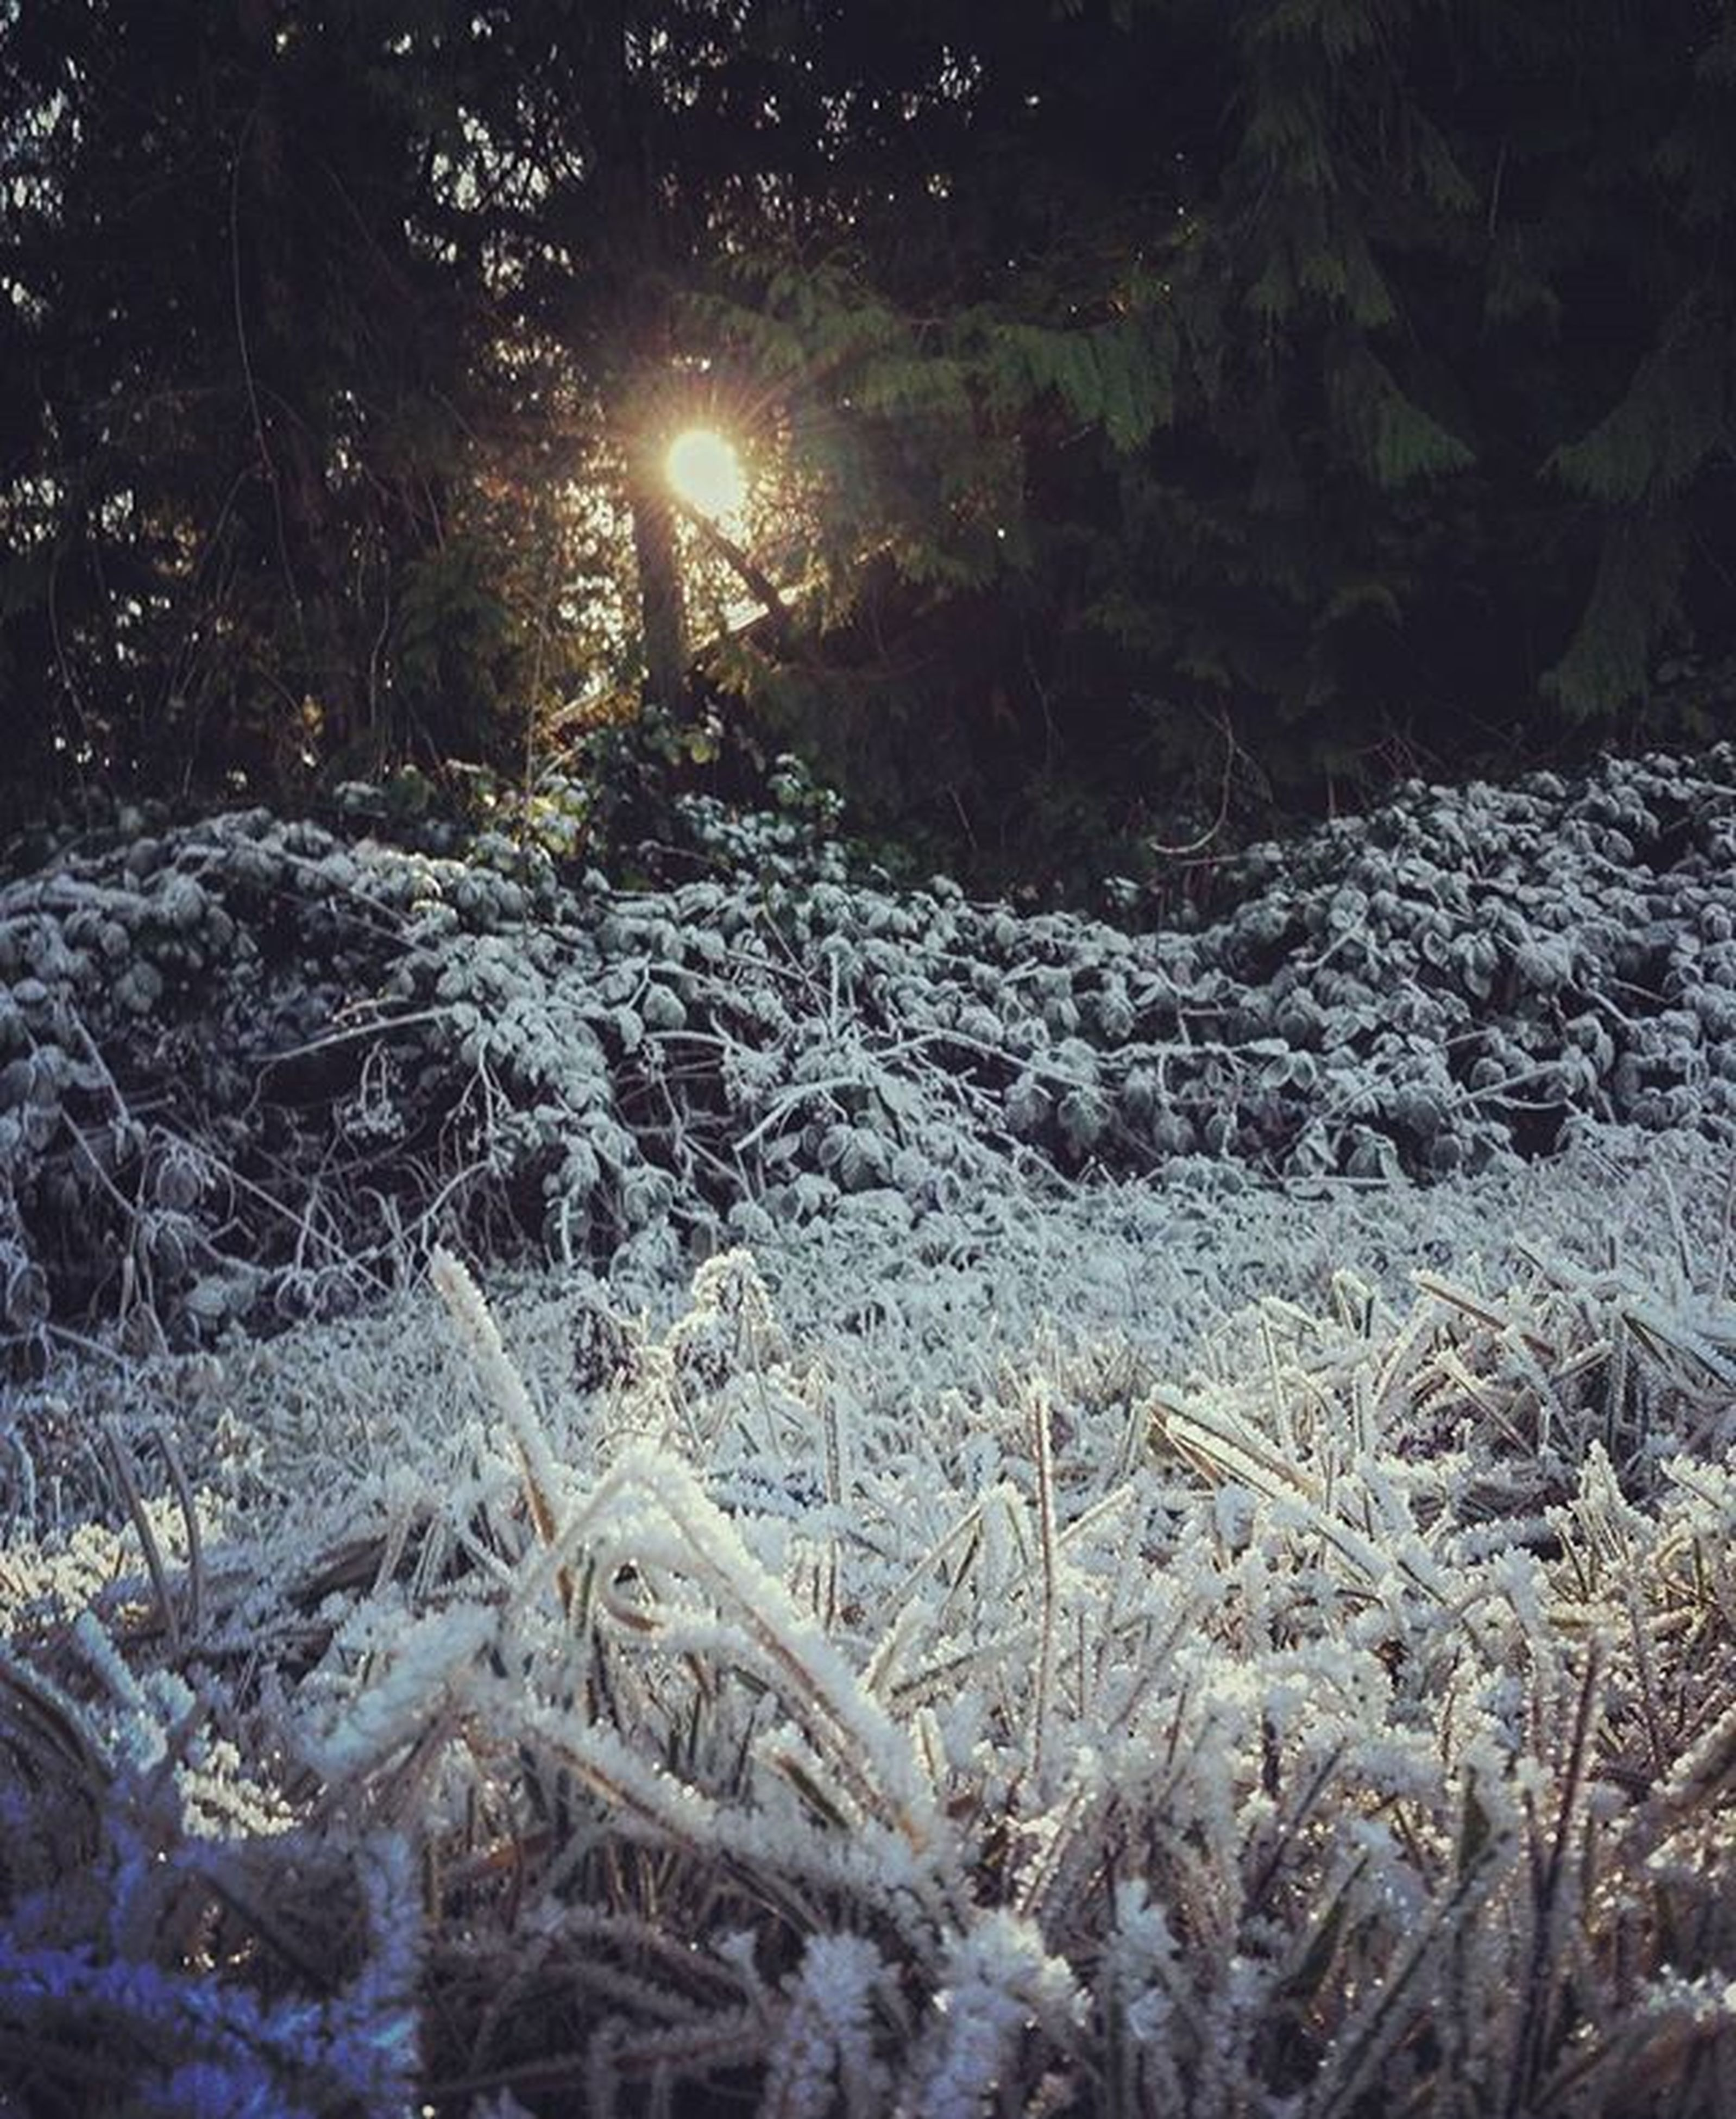 sun, tranquility, tree, sunlight, nature, tranquil scene, winter, sunbeam, snow, lens flare, cold temperature, forest, scenics, beauty in nature, grass, non-urban scene, landscape, field, growth, outdoors